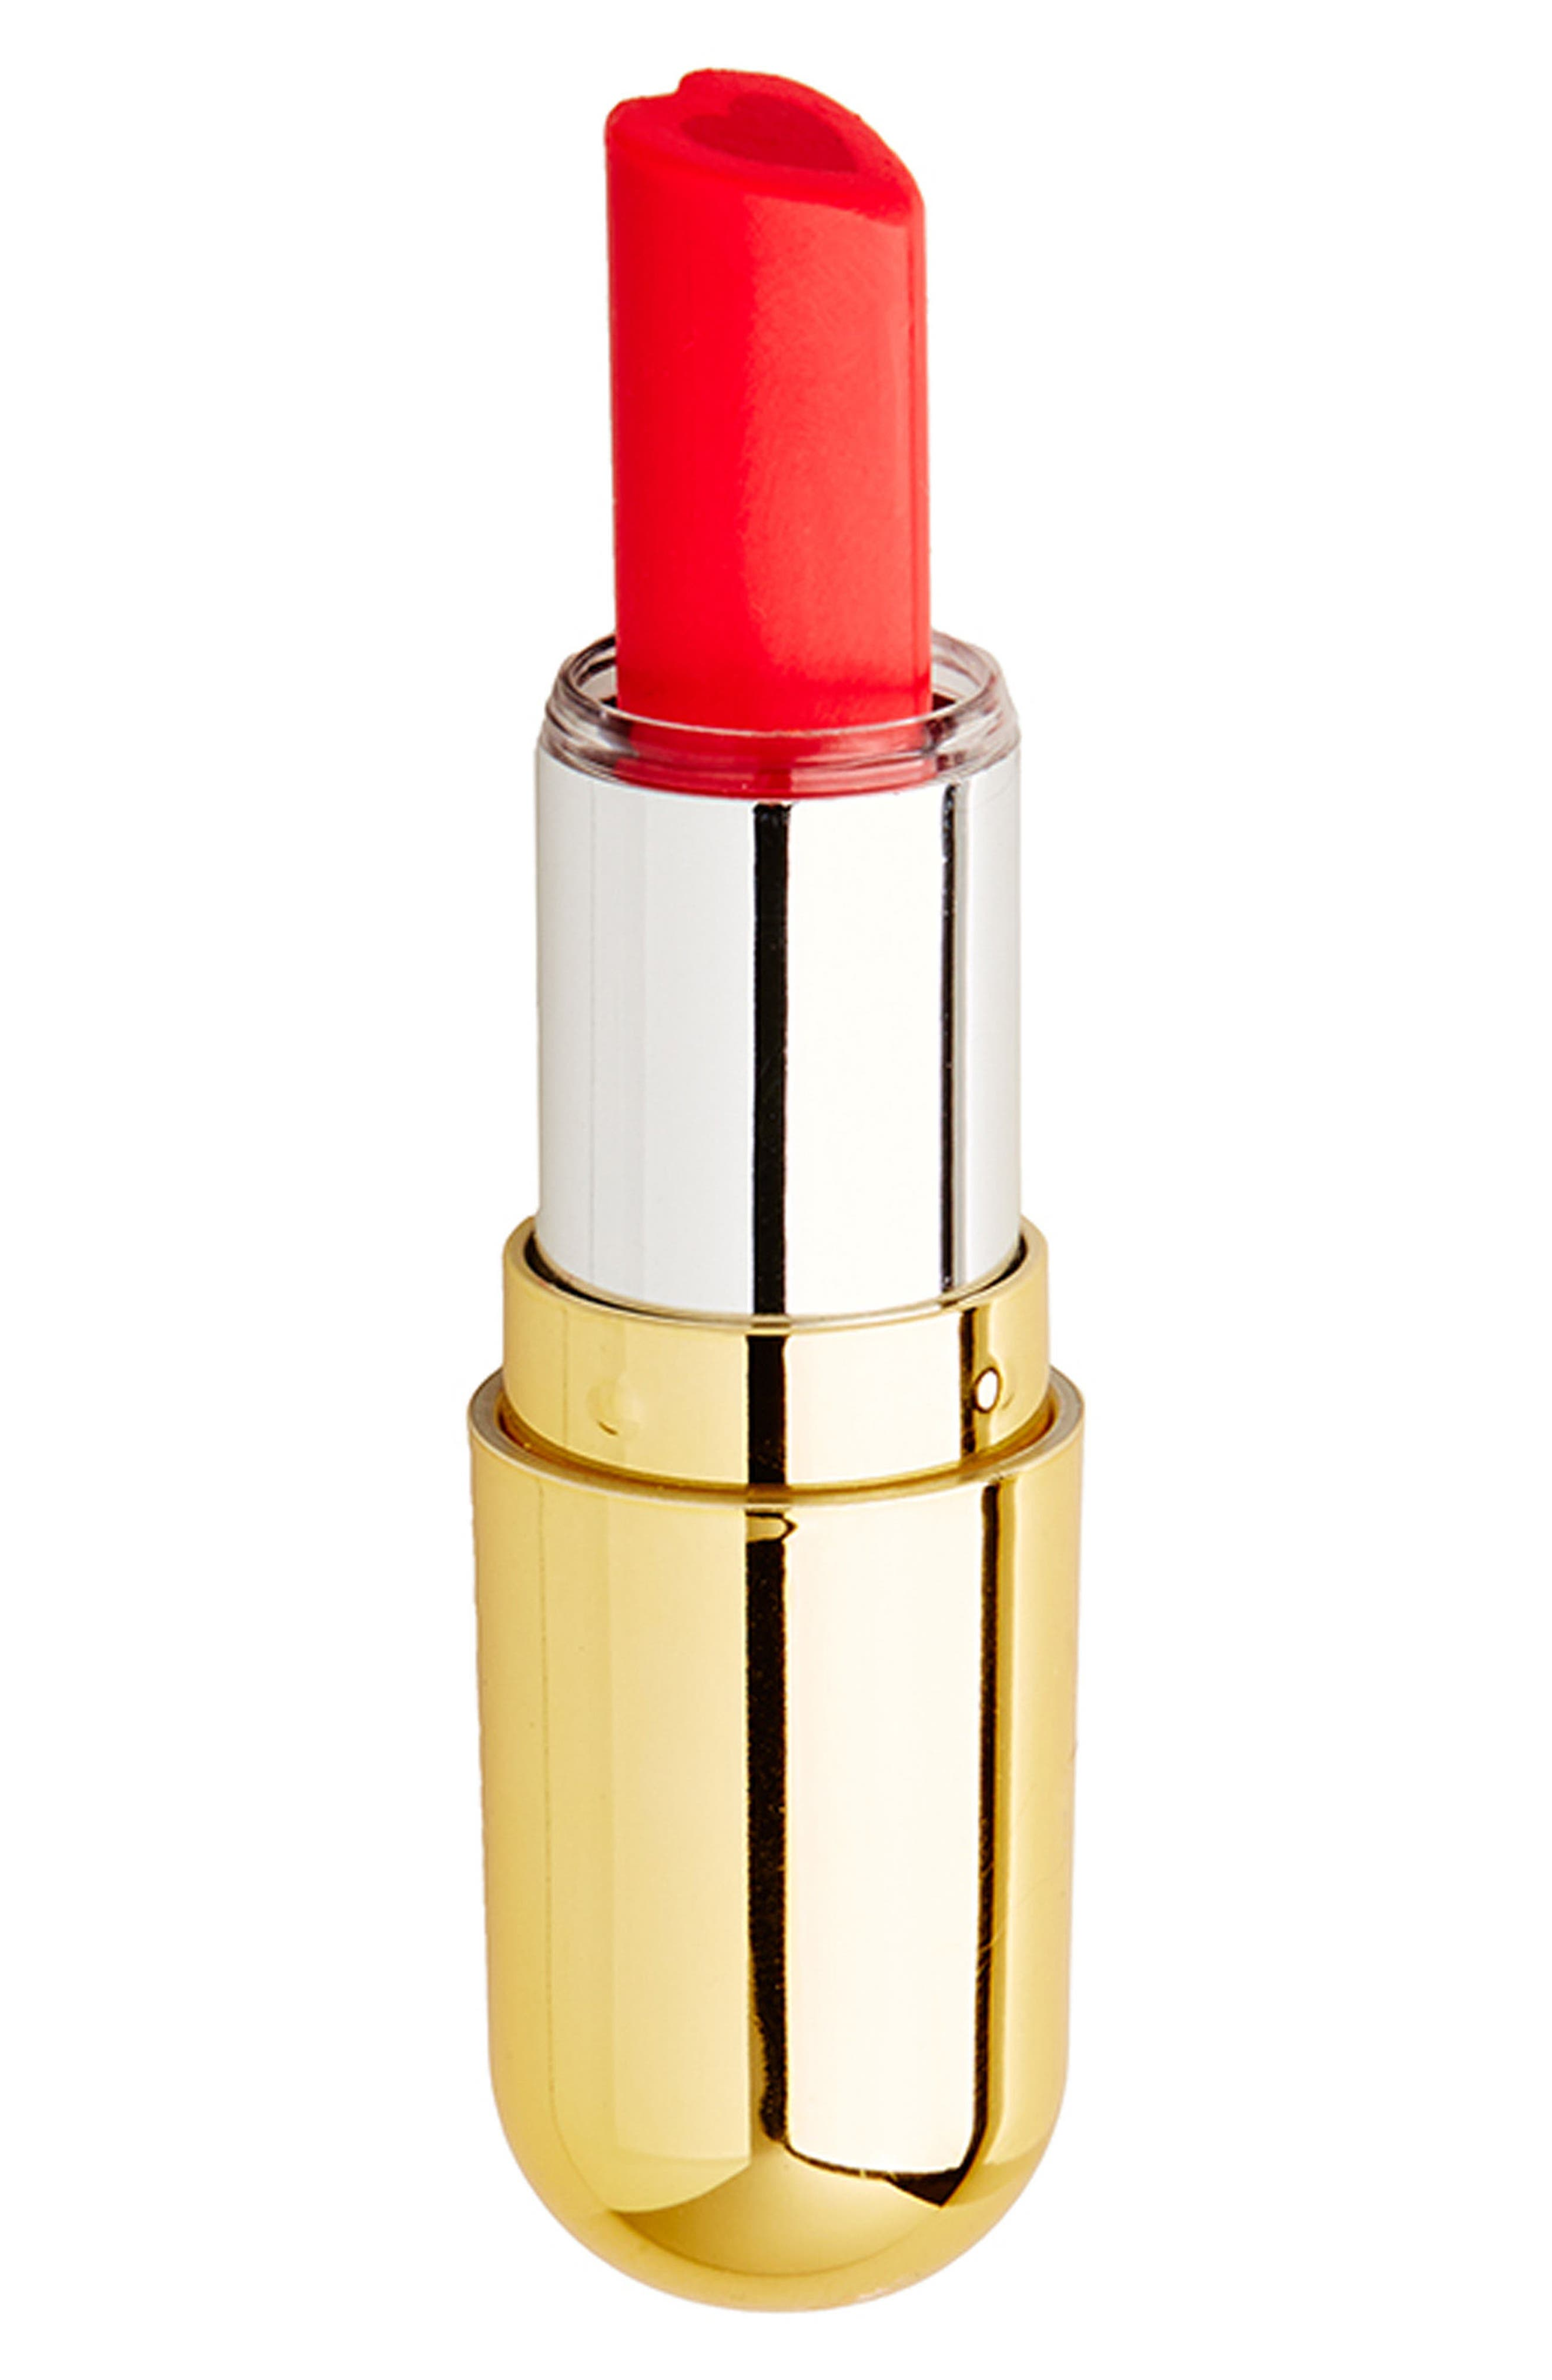 Alternate Image 1 Selected - Winky Luxe Heart Lipstick